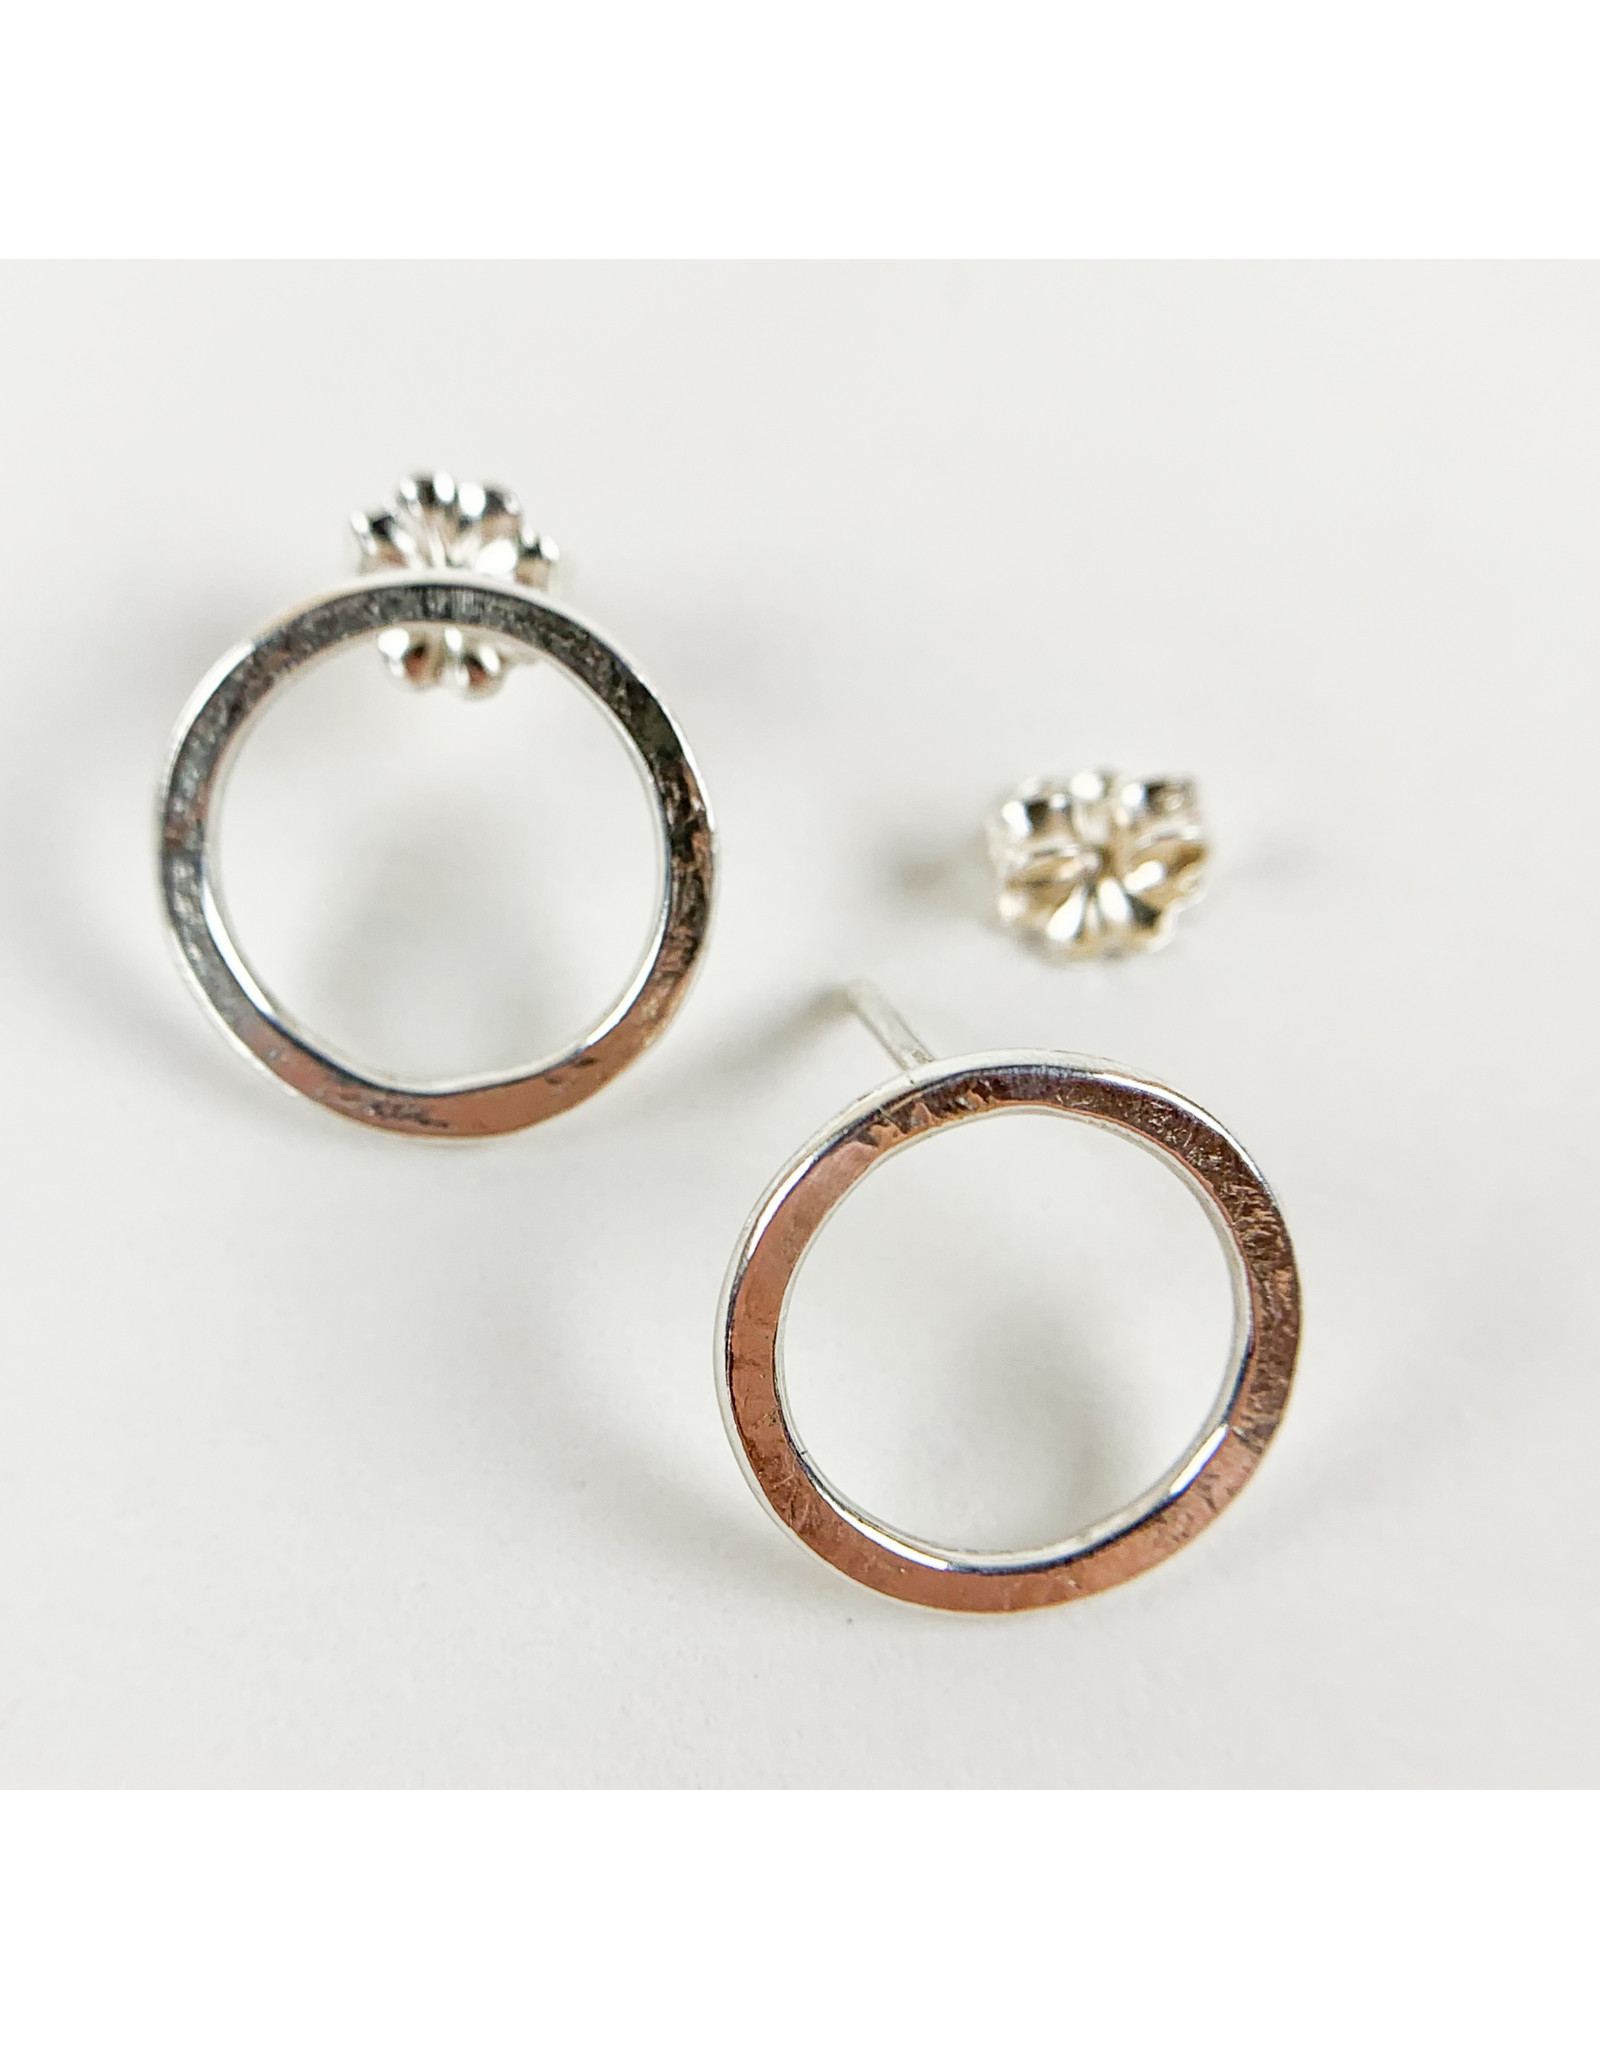 Camille Hempel Jewelry-Consignment CHE22 Small Circle Stud Pair